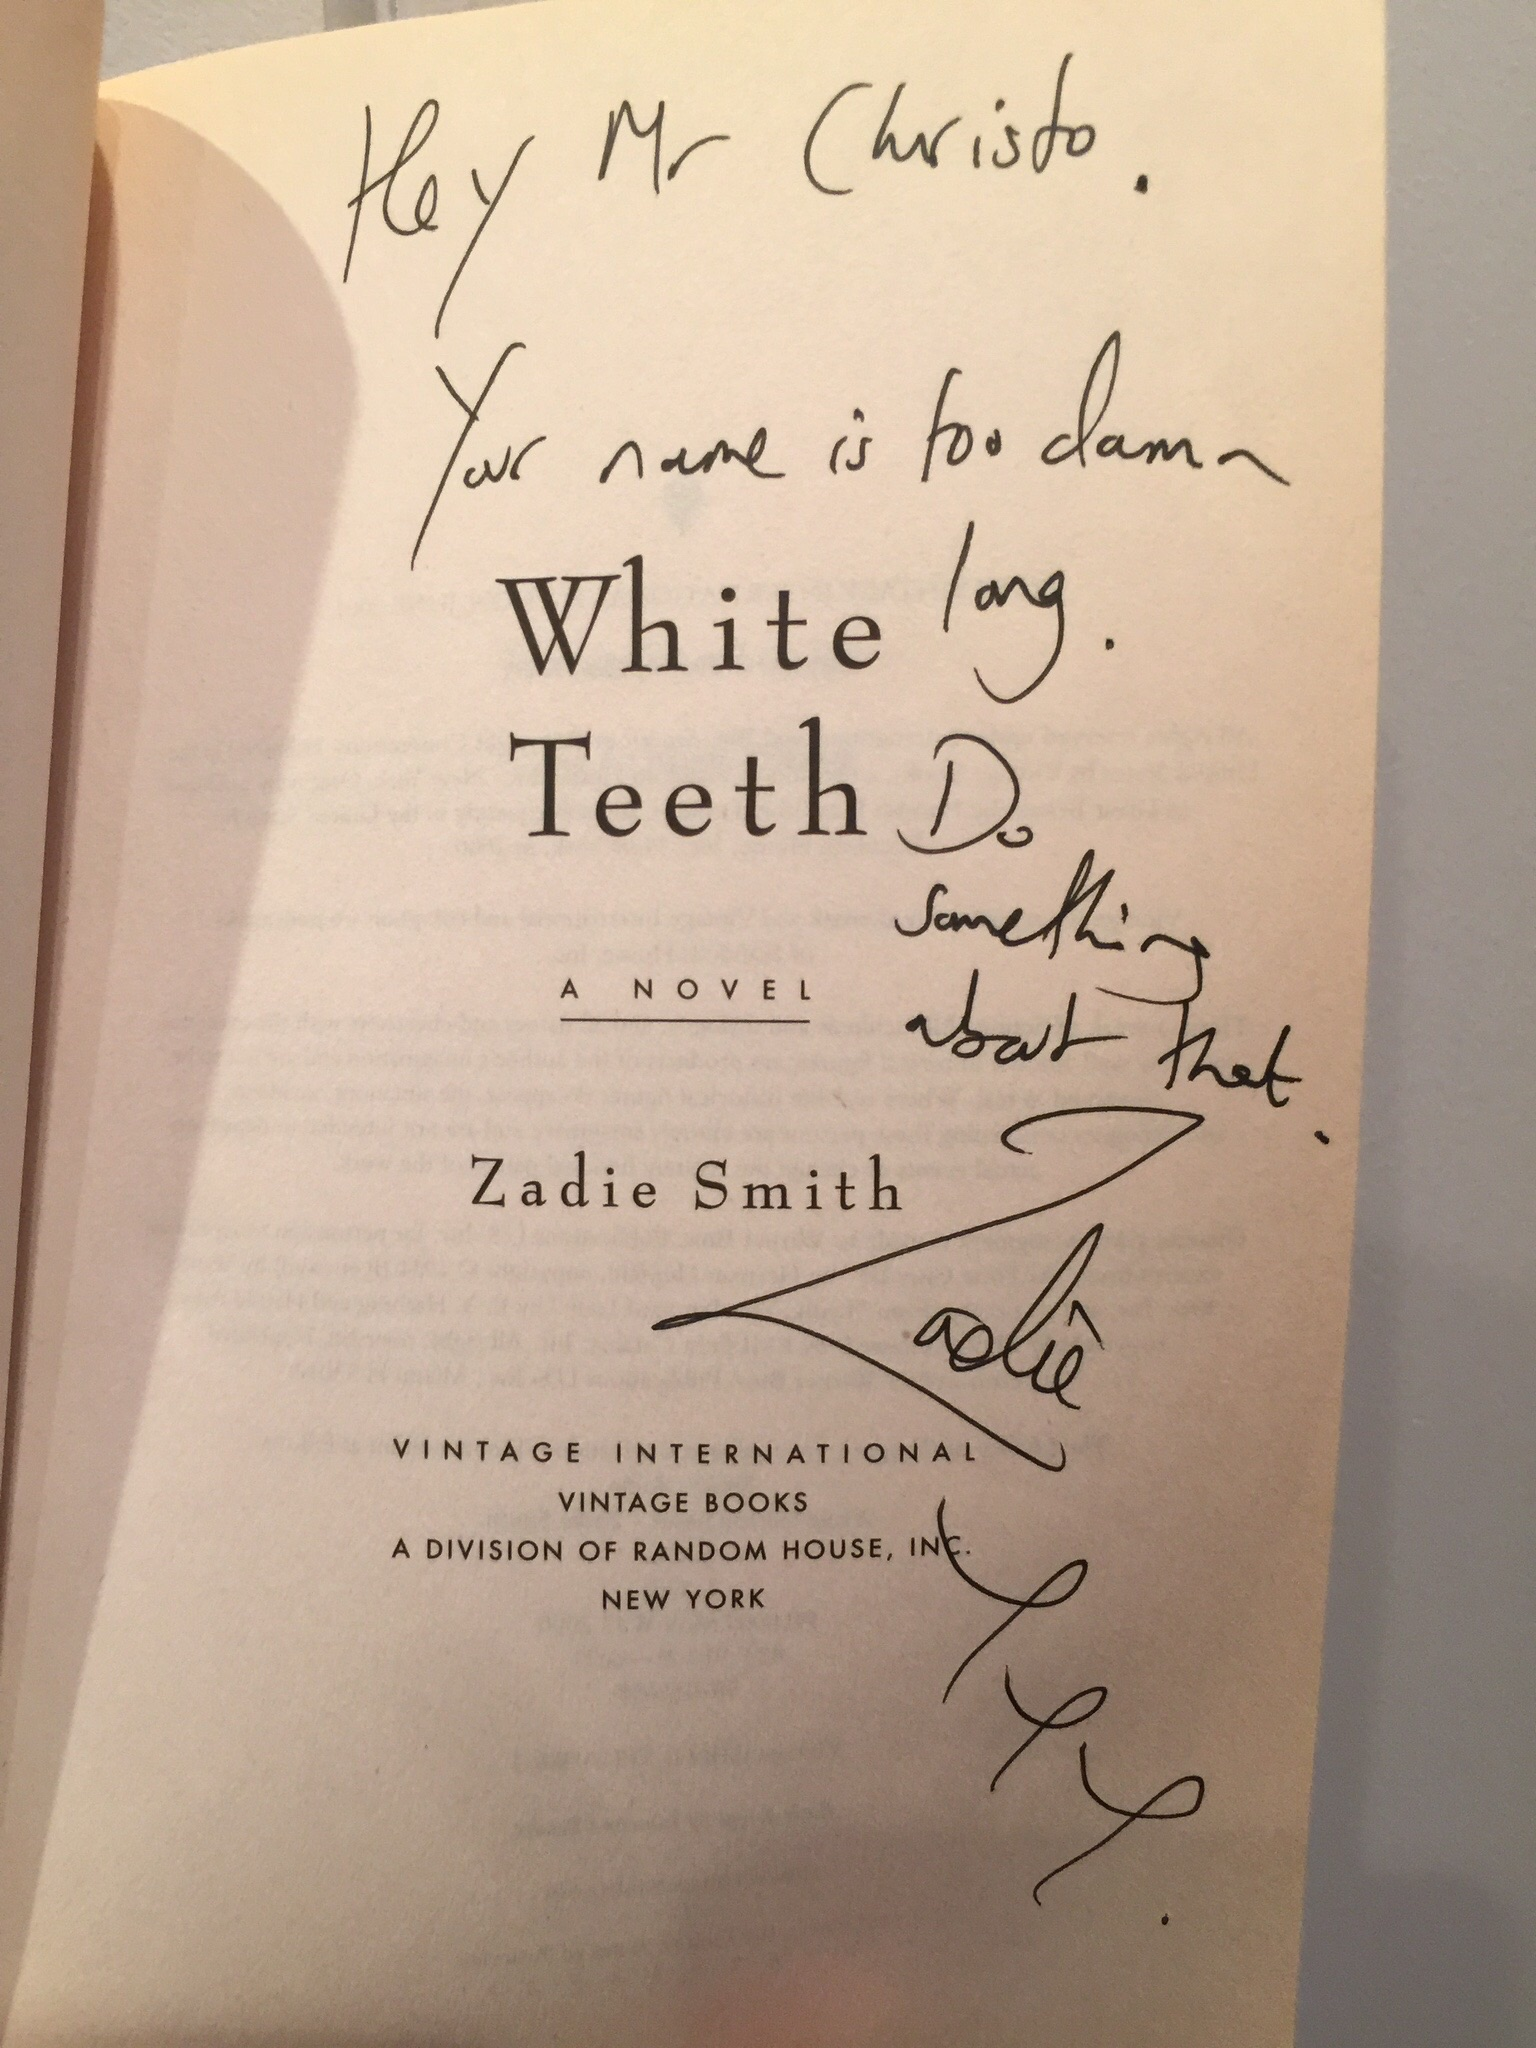 Here's Zadie Smith's comment about my name.